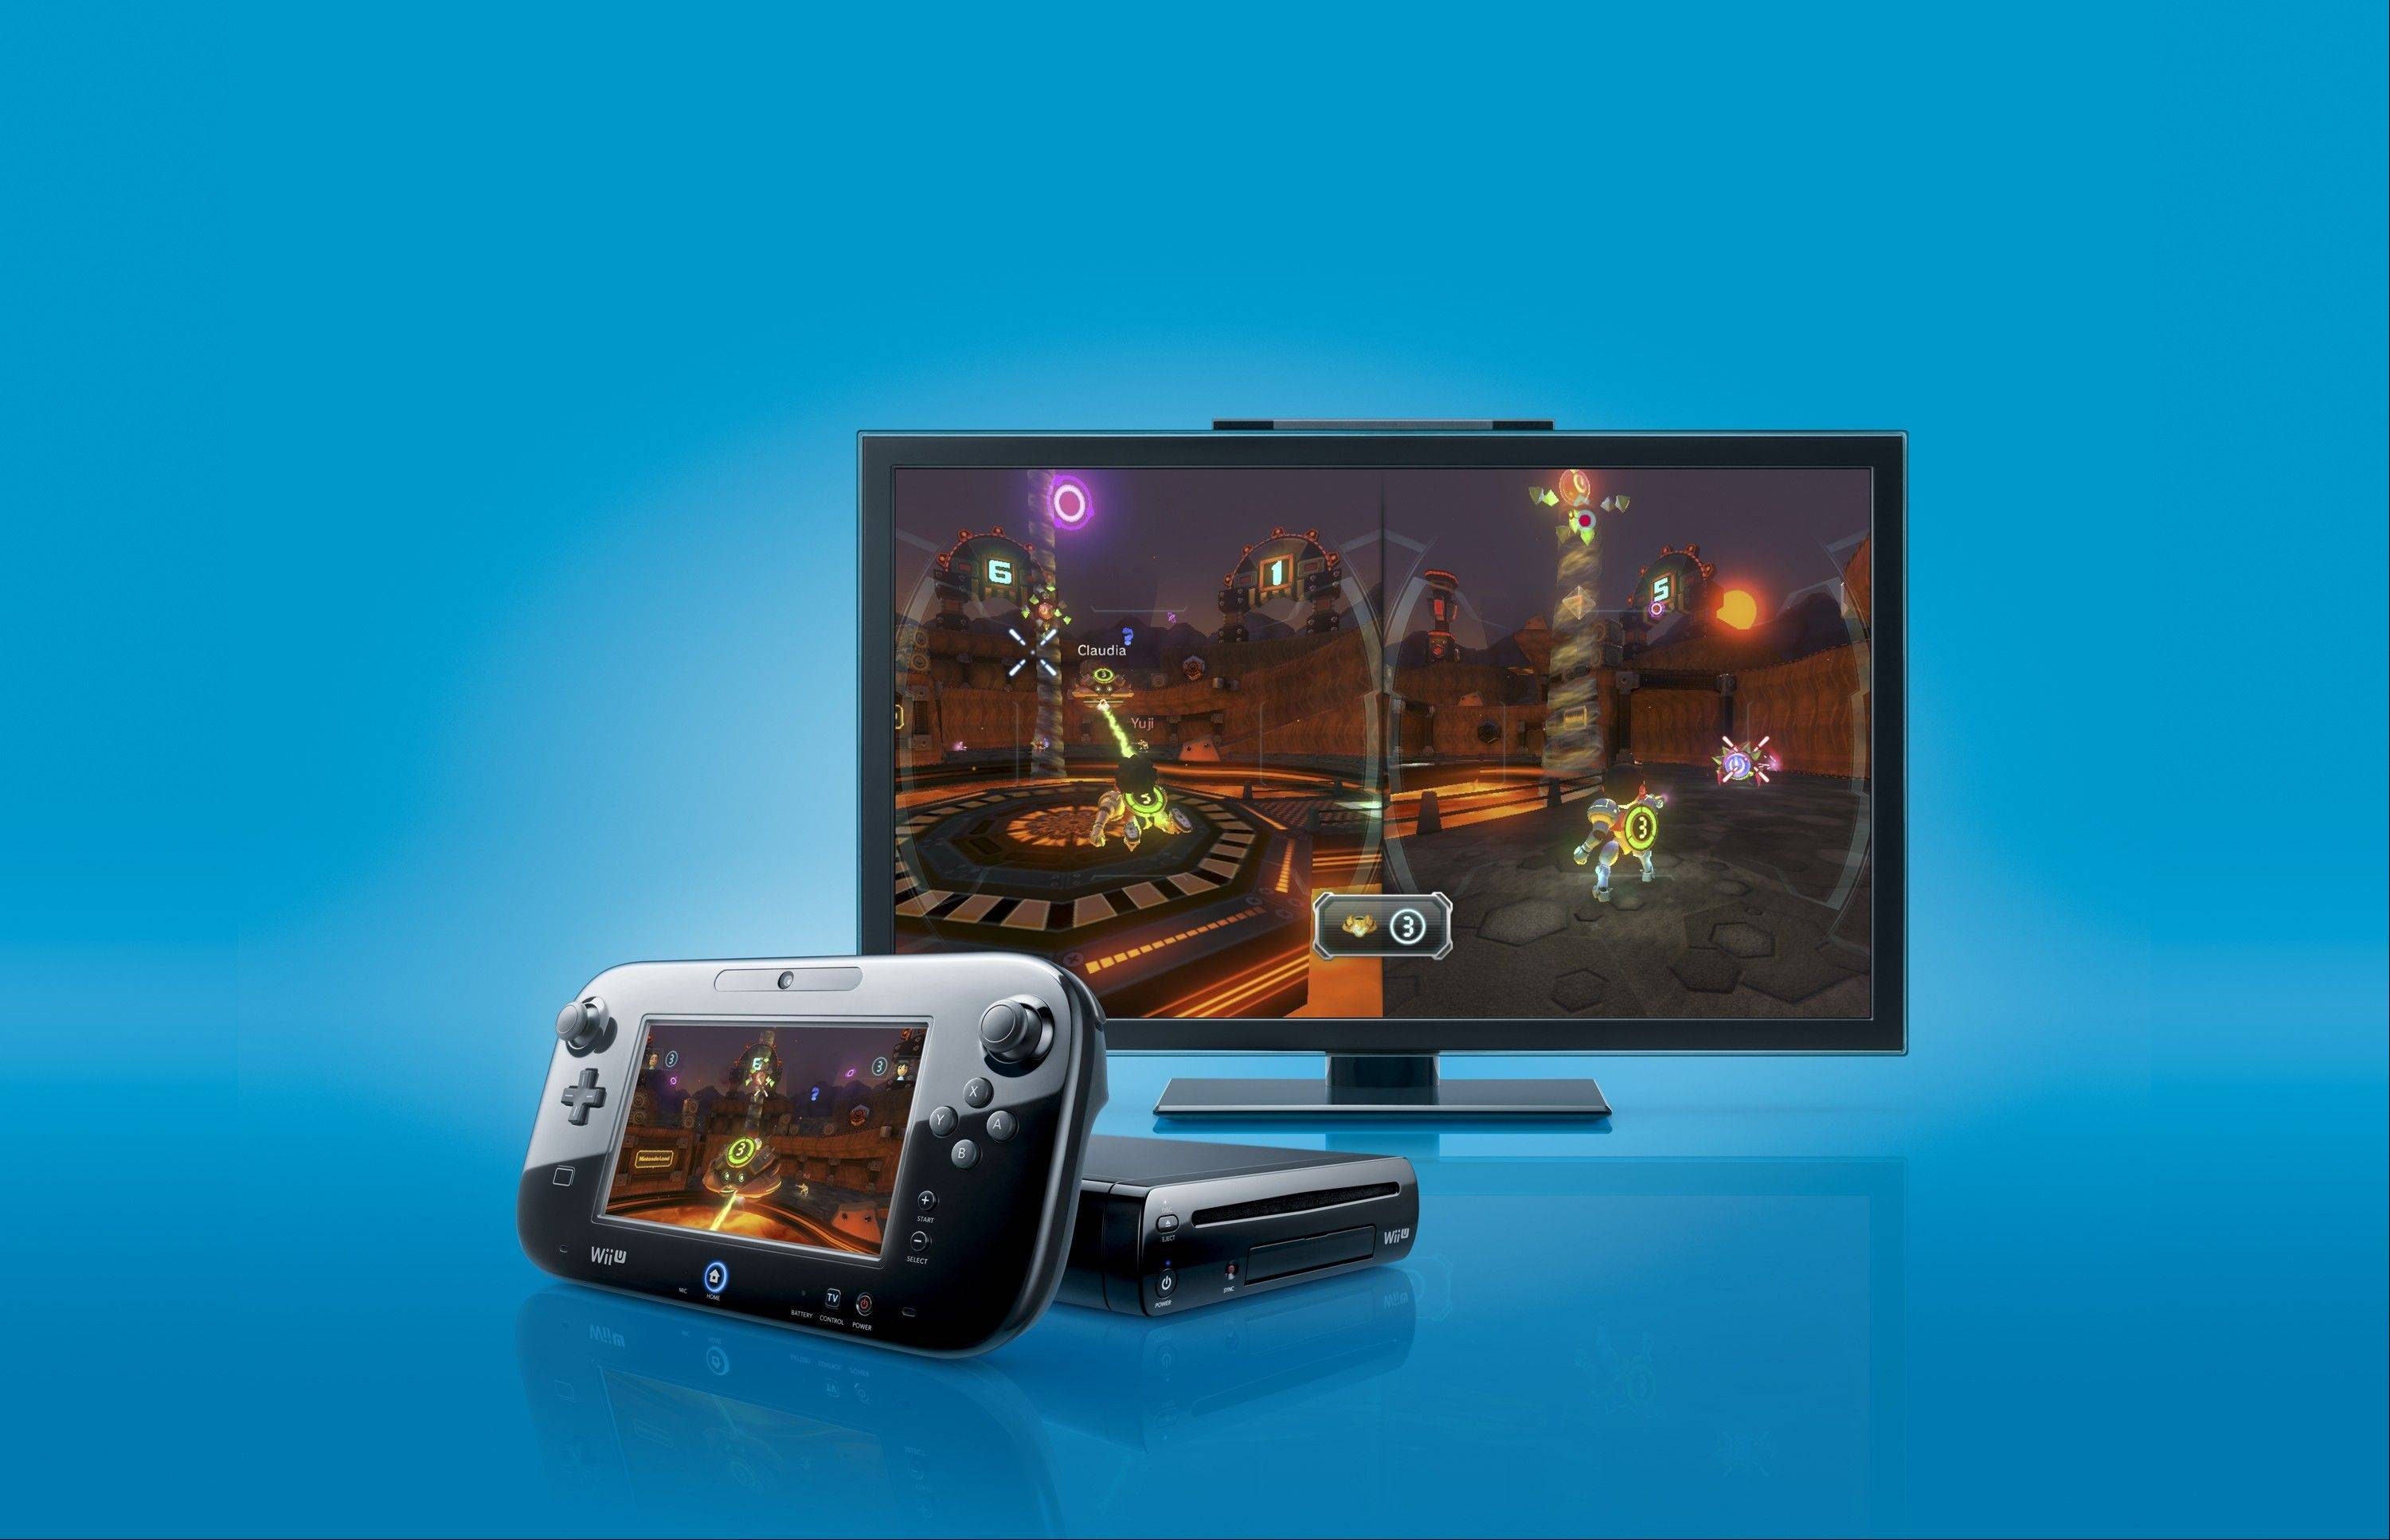 Nintendo's TVii is free but you'll need a Wii U game console, which starts at $300. You'll also need to pay extra to use video services such as Hulu Plus, Amazon and Netflix.